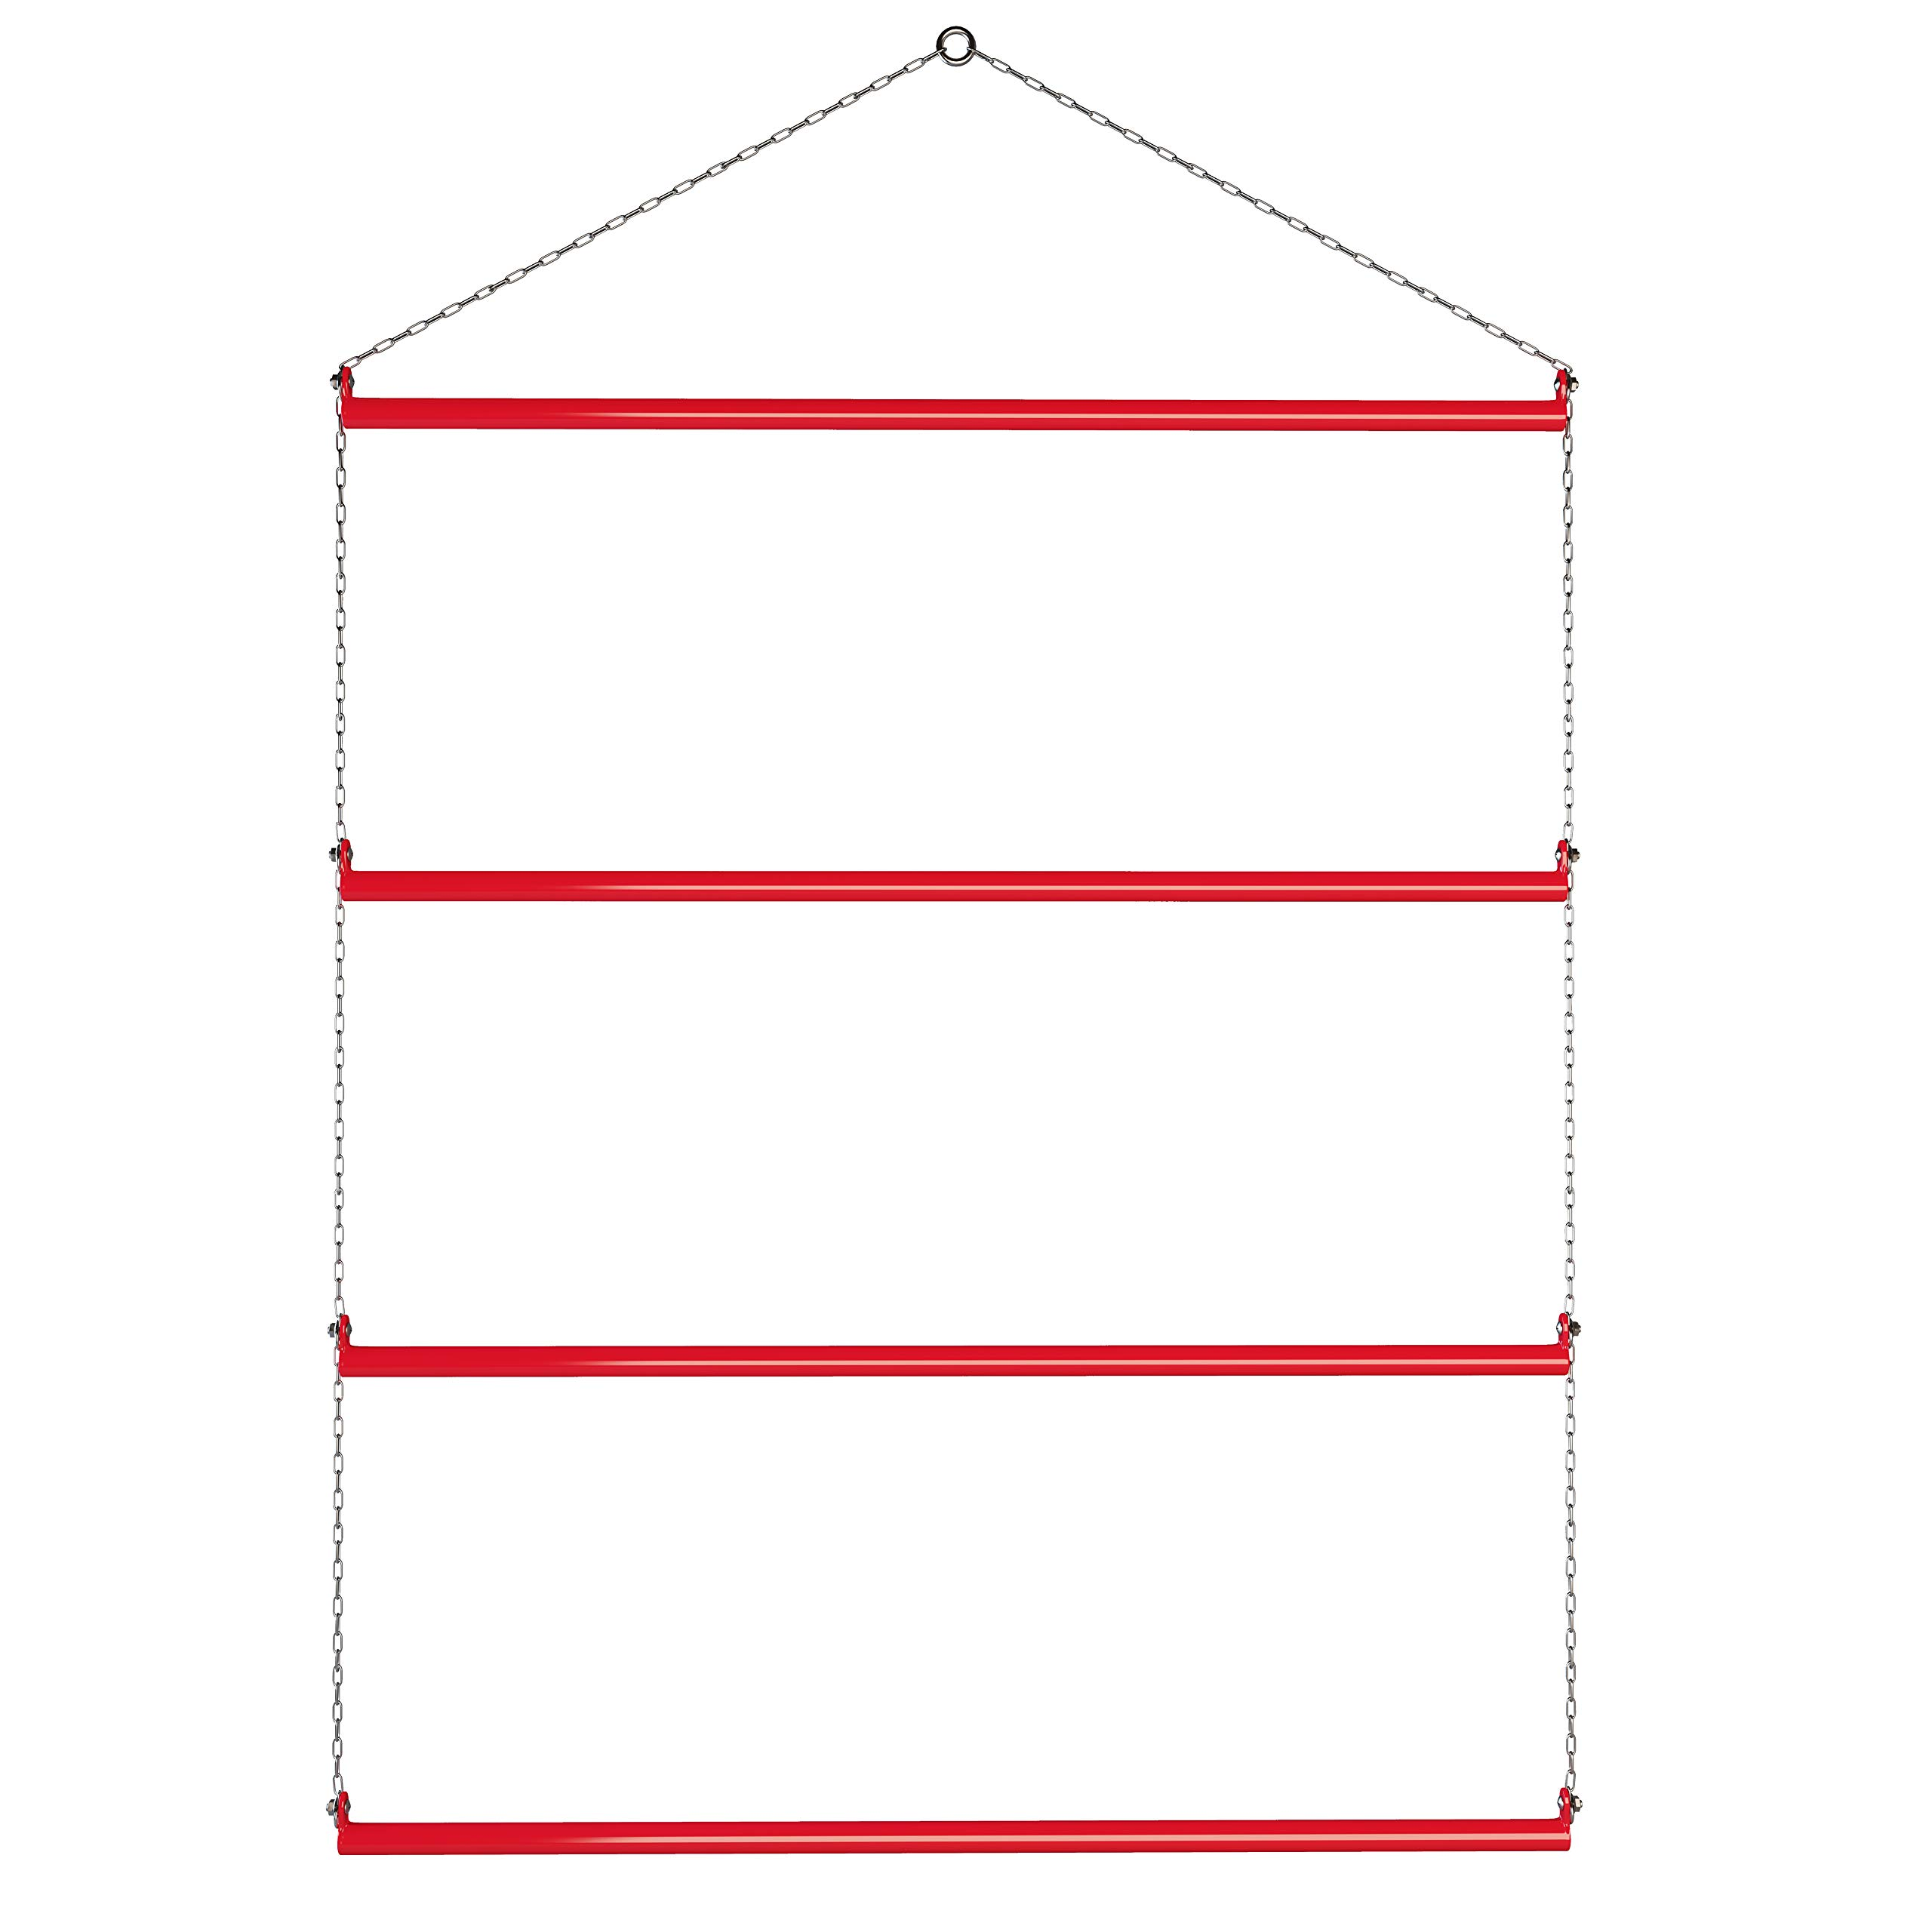 Echo Beach Equestrian Blanket Rack 33'' (Red). Available in Black, Blue, Red & Pink. Suitable for Horse Blankets, Saddle Blankets and Rugs. Extra Long for Western Saddle Blankets and Horse Blankets.